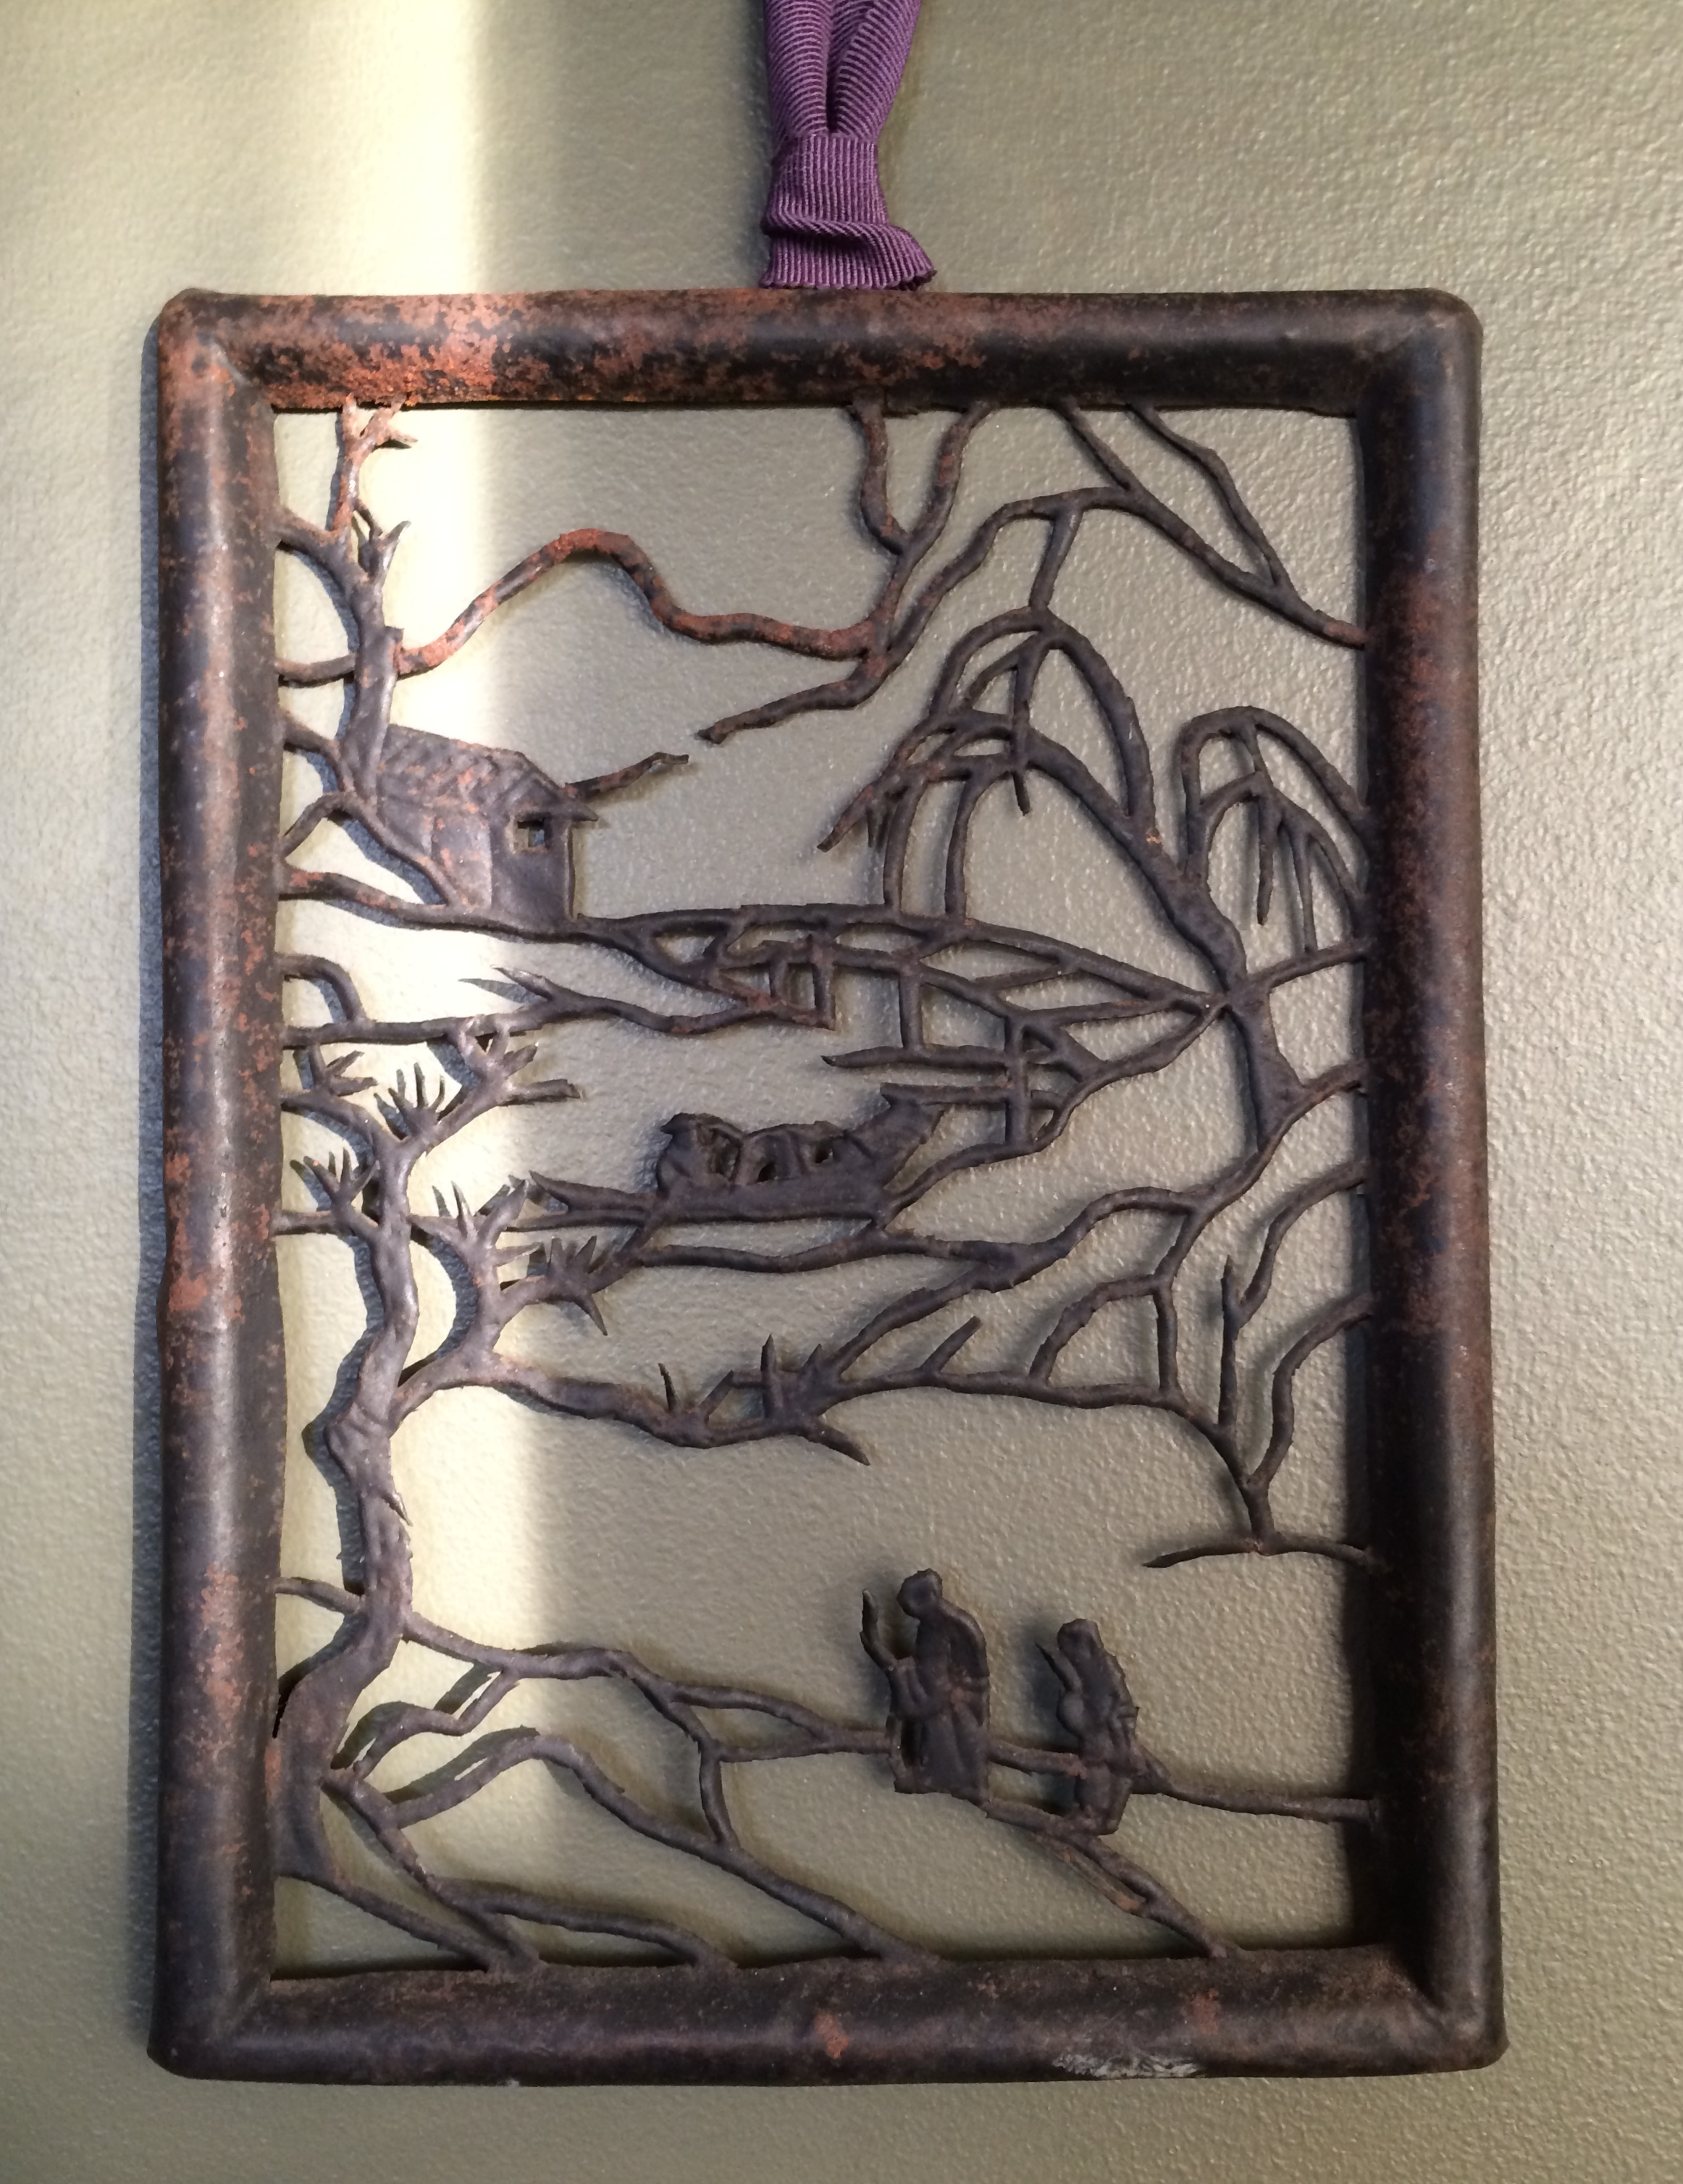 A tiny world rendered in pierced tin.